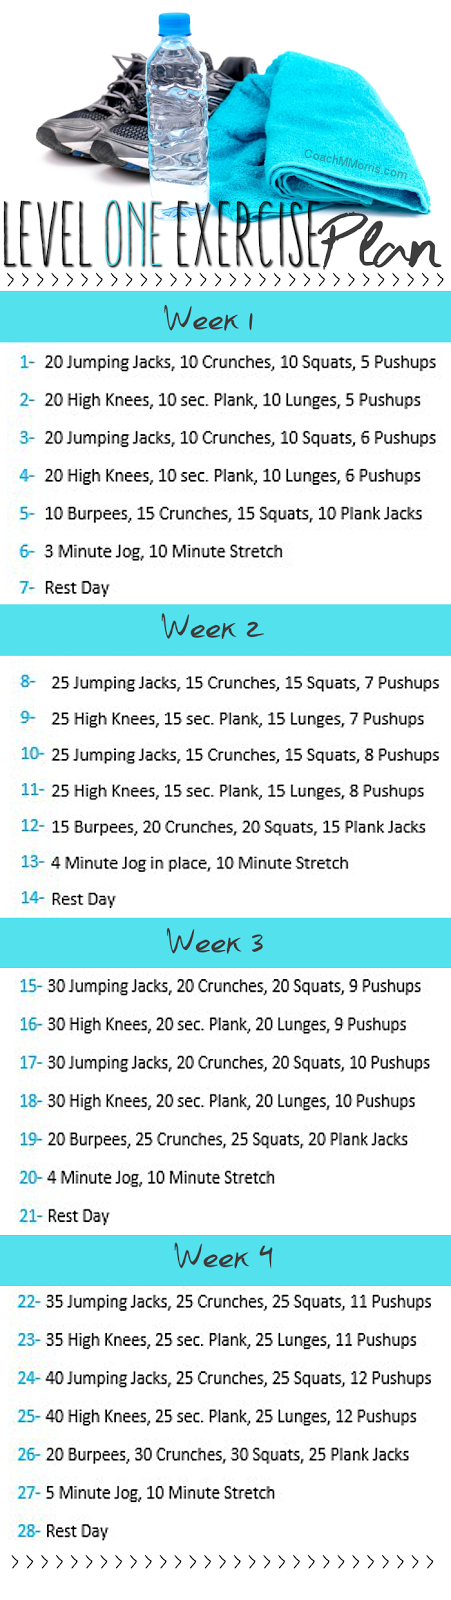 Level One Exercise Plan Snag A PDF Download Of This Routine On My Blog